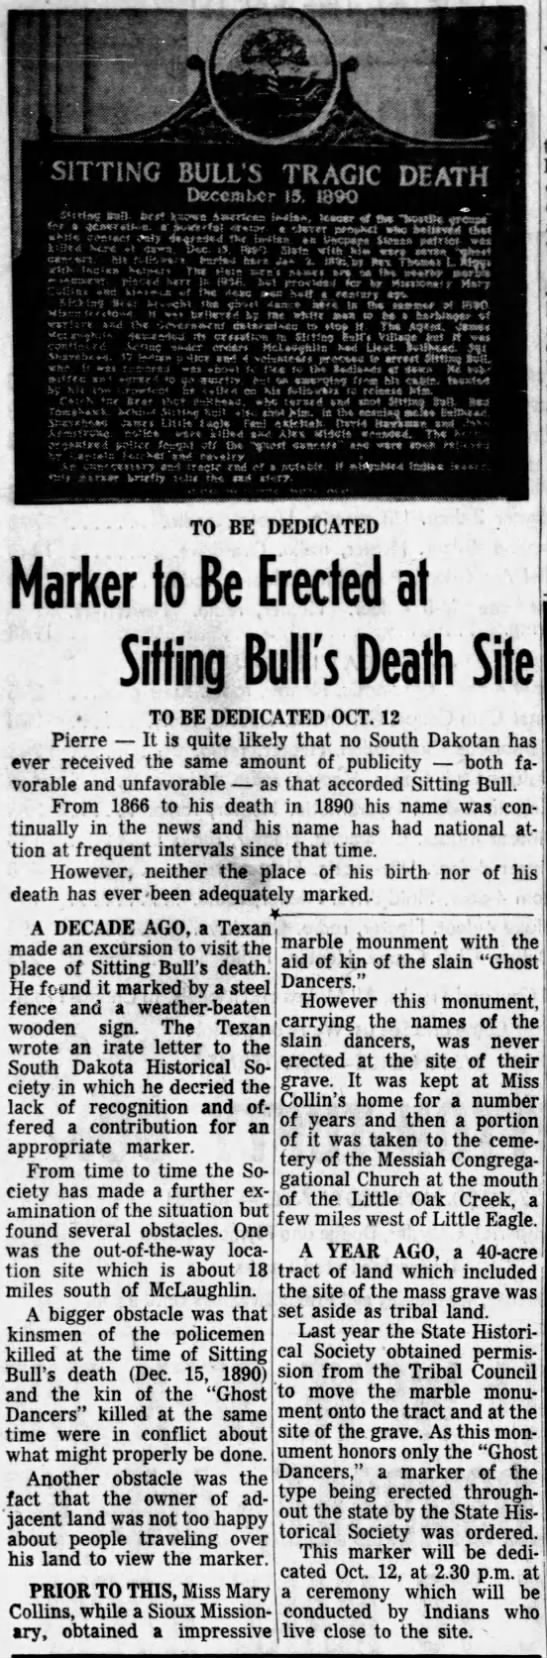 Marker to be erected at Sitting Bull's death site in 1958 -